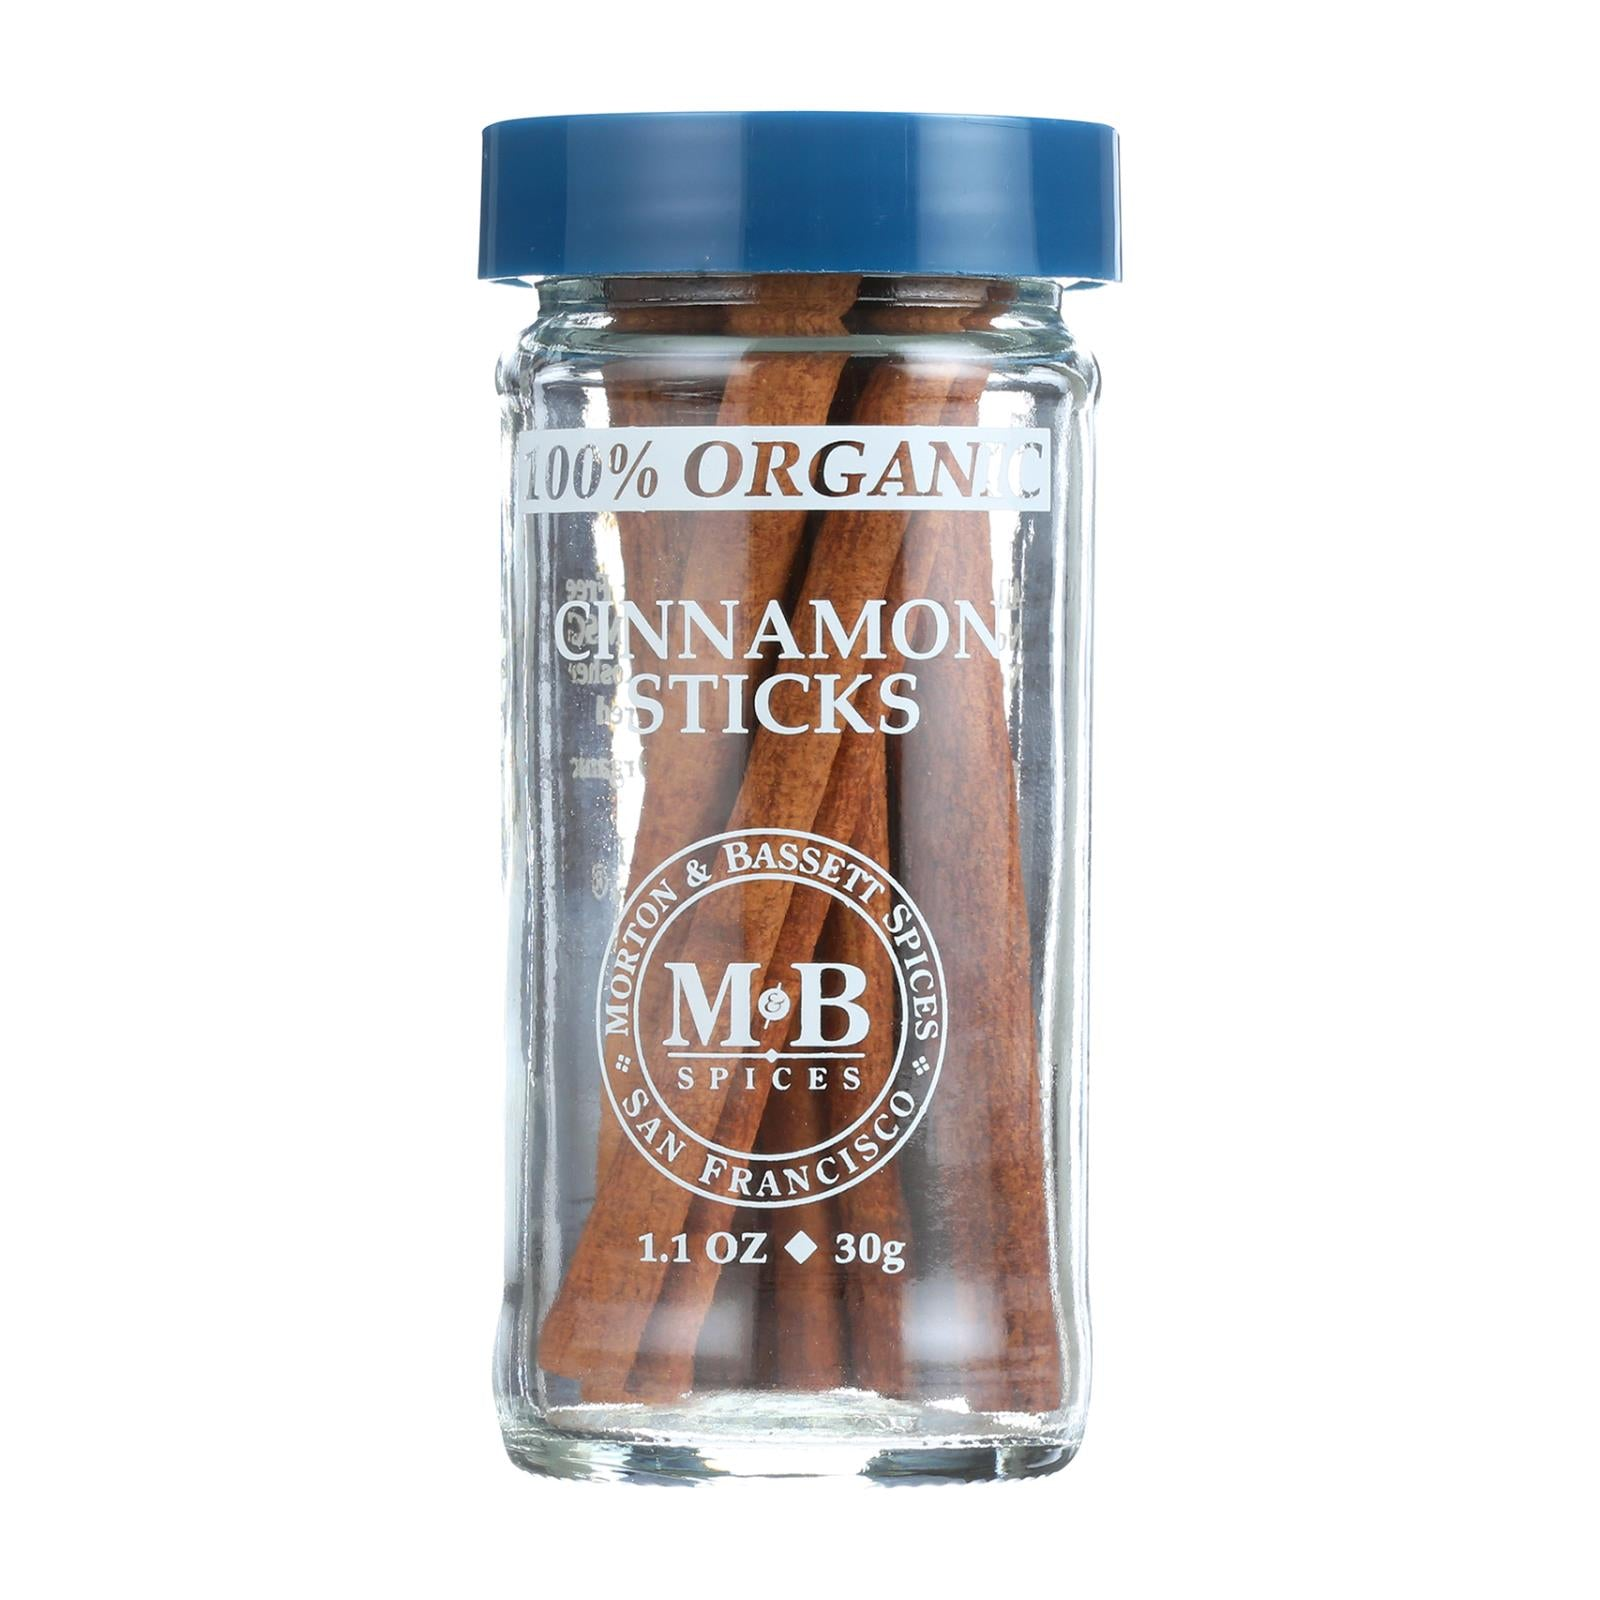 Morton And Bassett Cinnamon Sticks - Cinnamon - Case Of 3 - 1.1 Oz. HG0135244